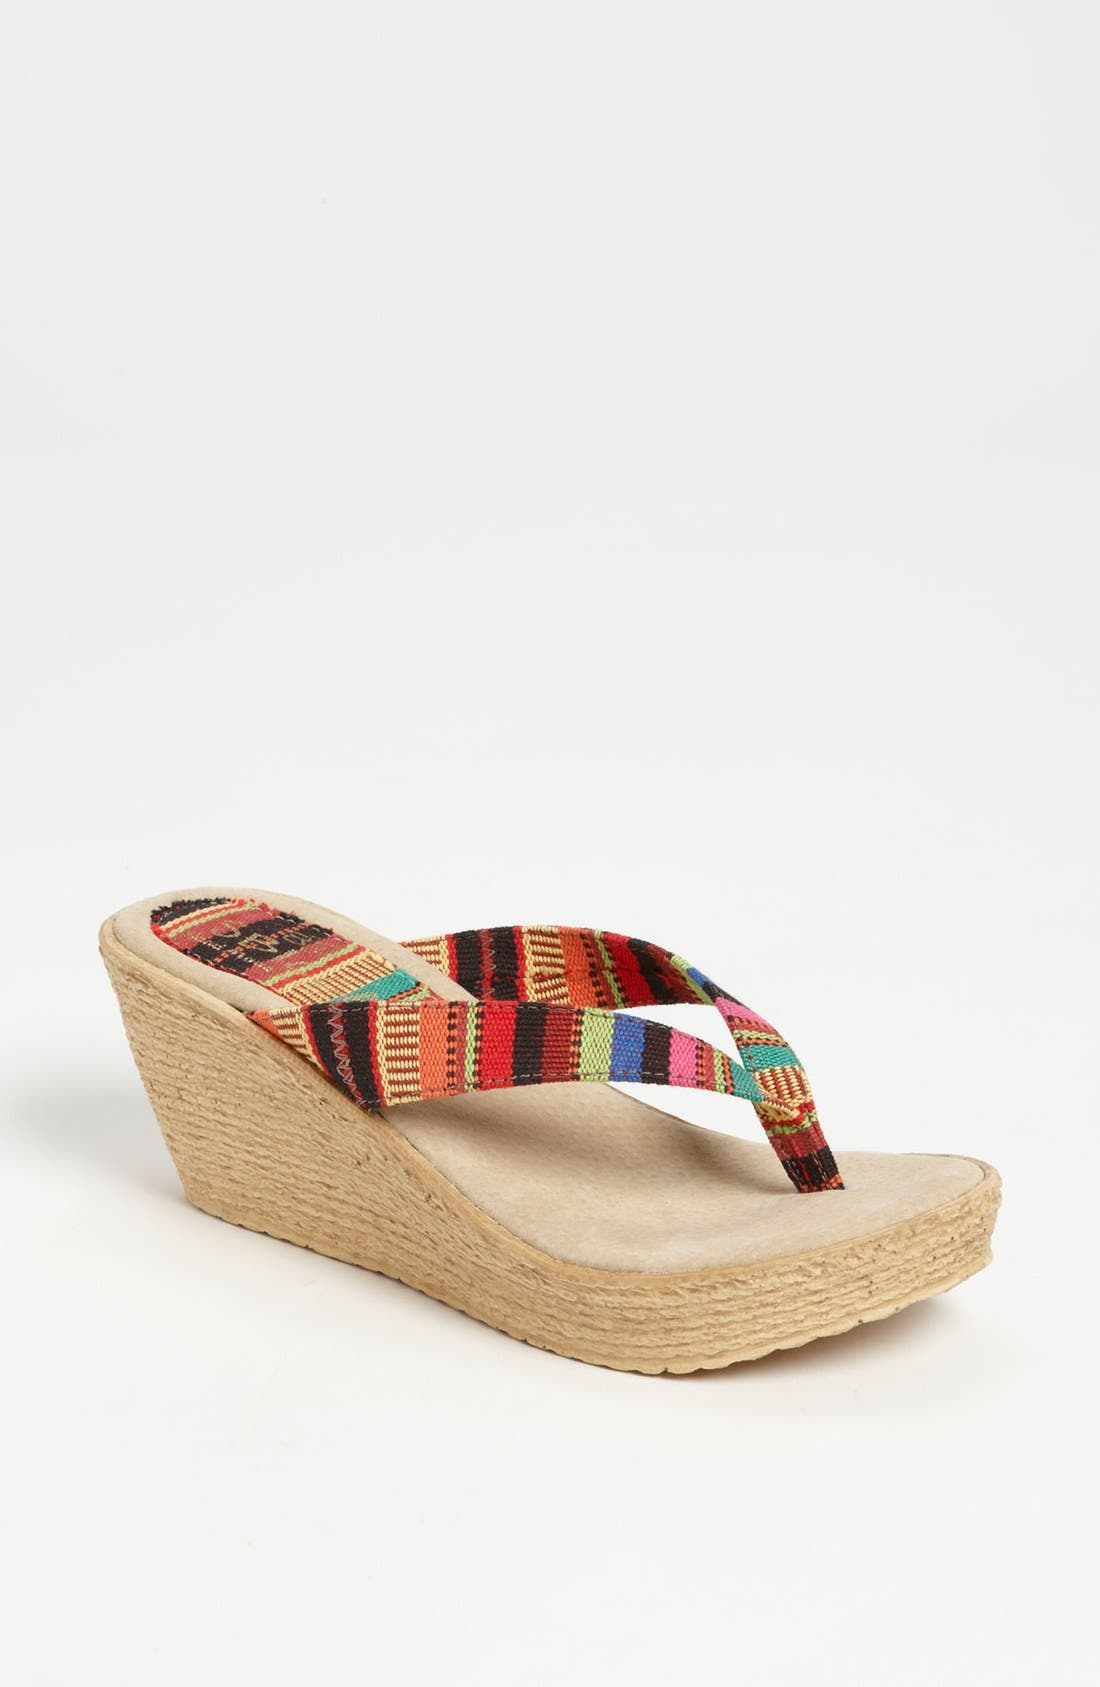 Main Image - Sbicca 'Andes' Wedge Sandal